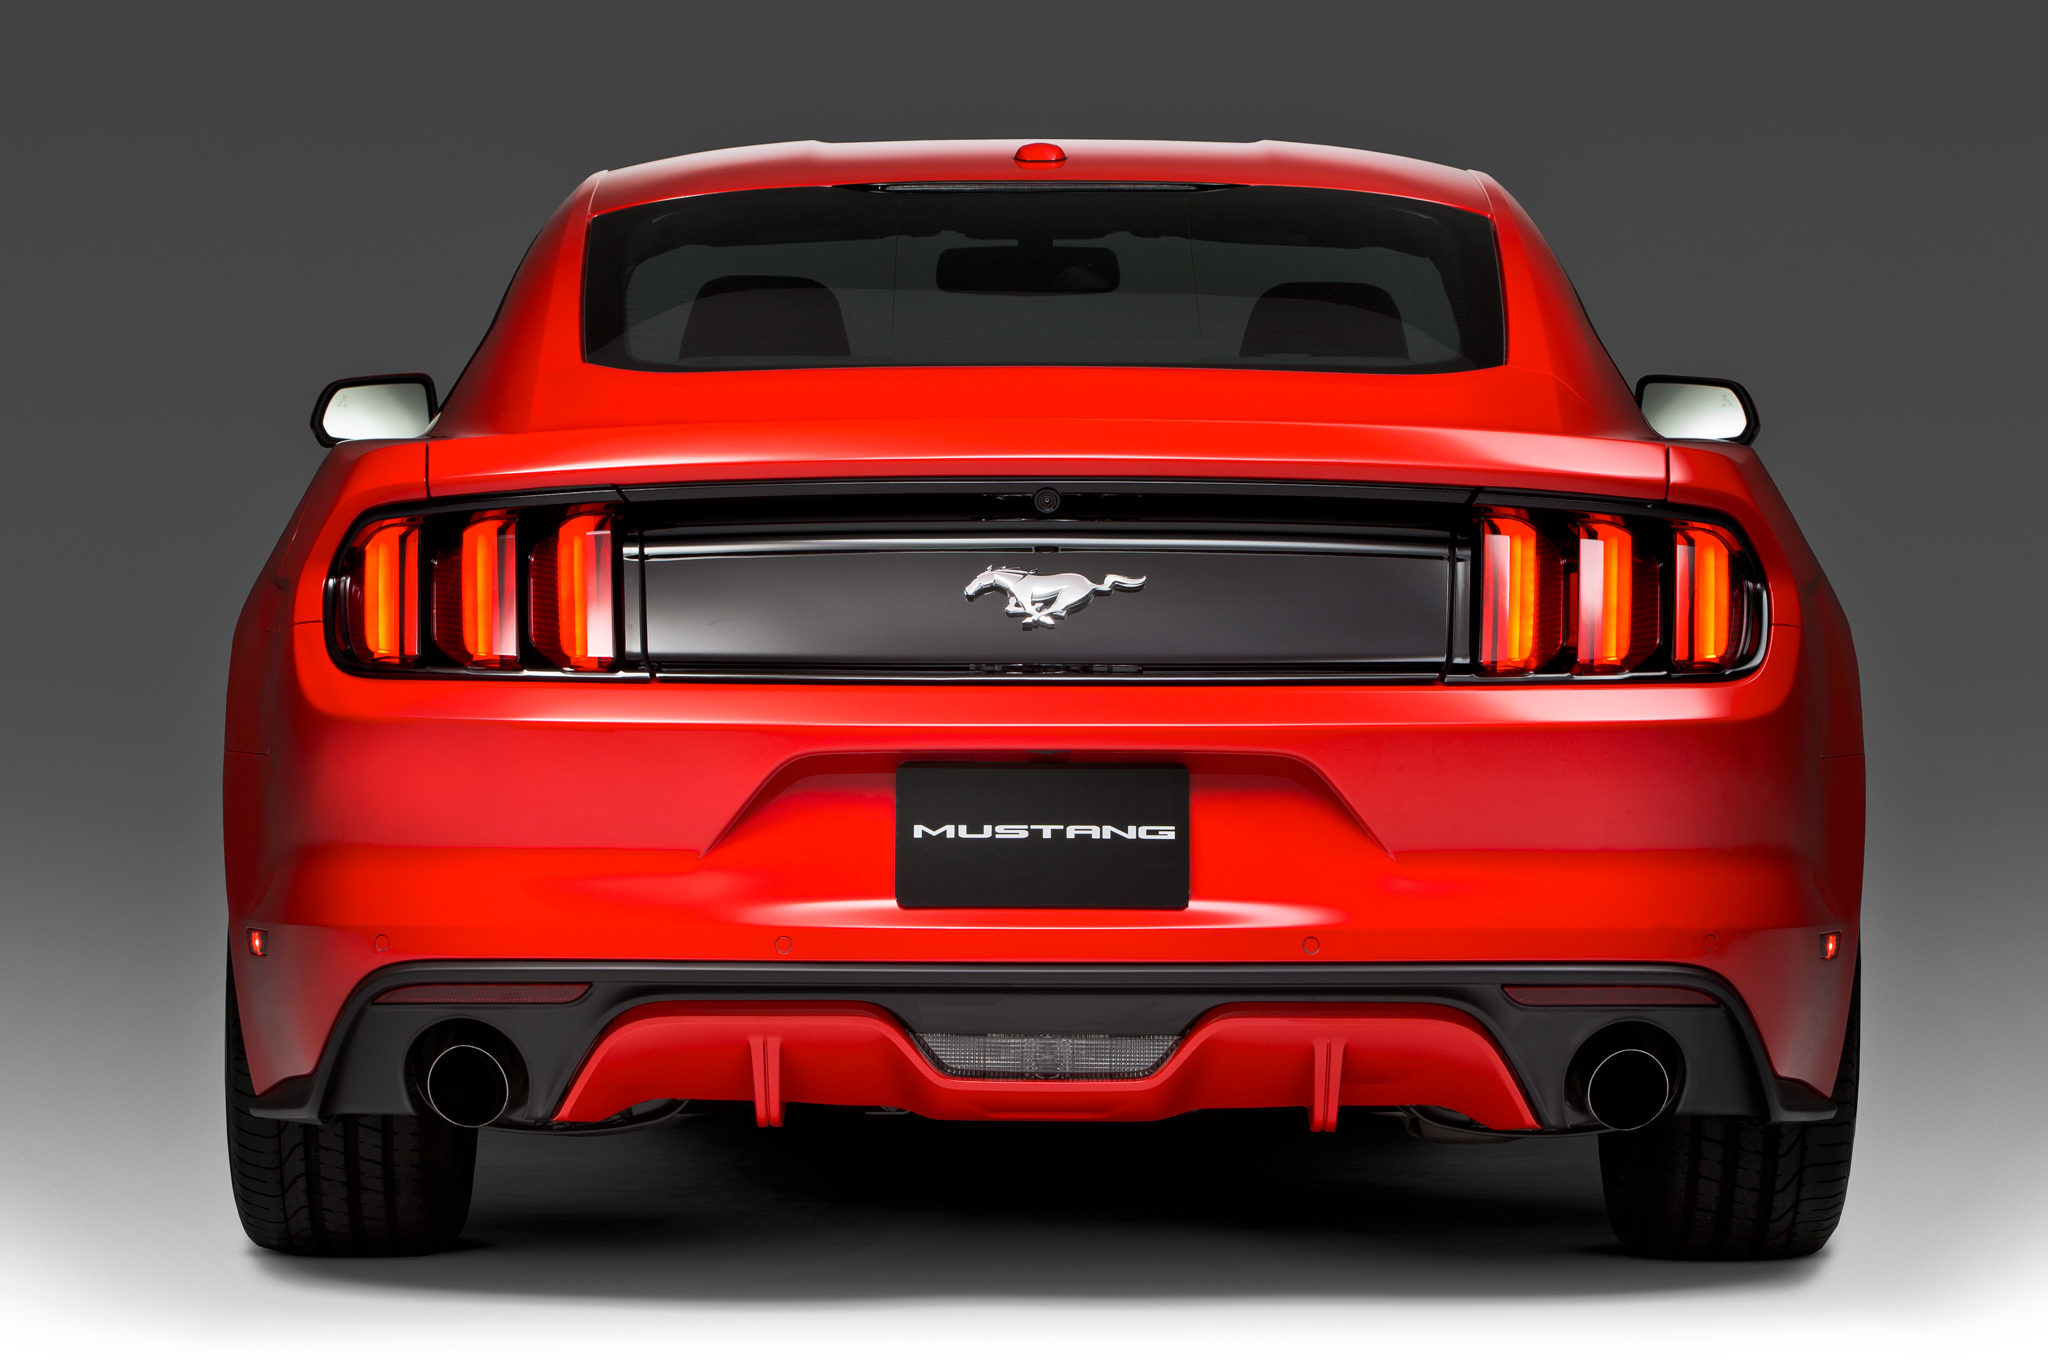 2015 Ford Mustang Rear Details (Photo 23 of 30)